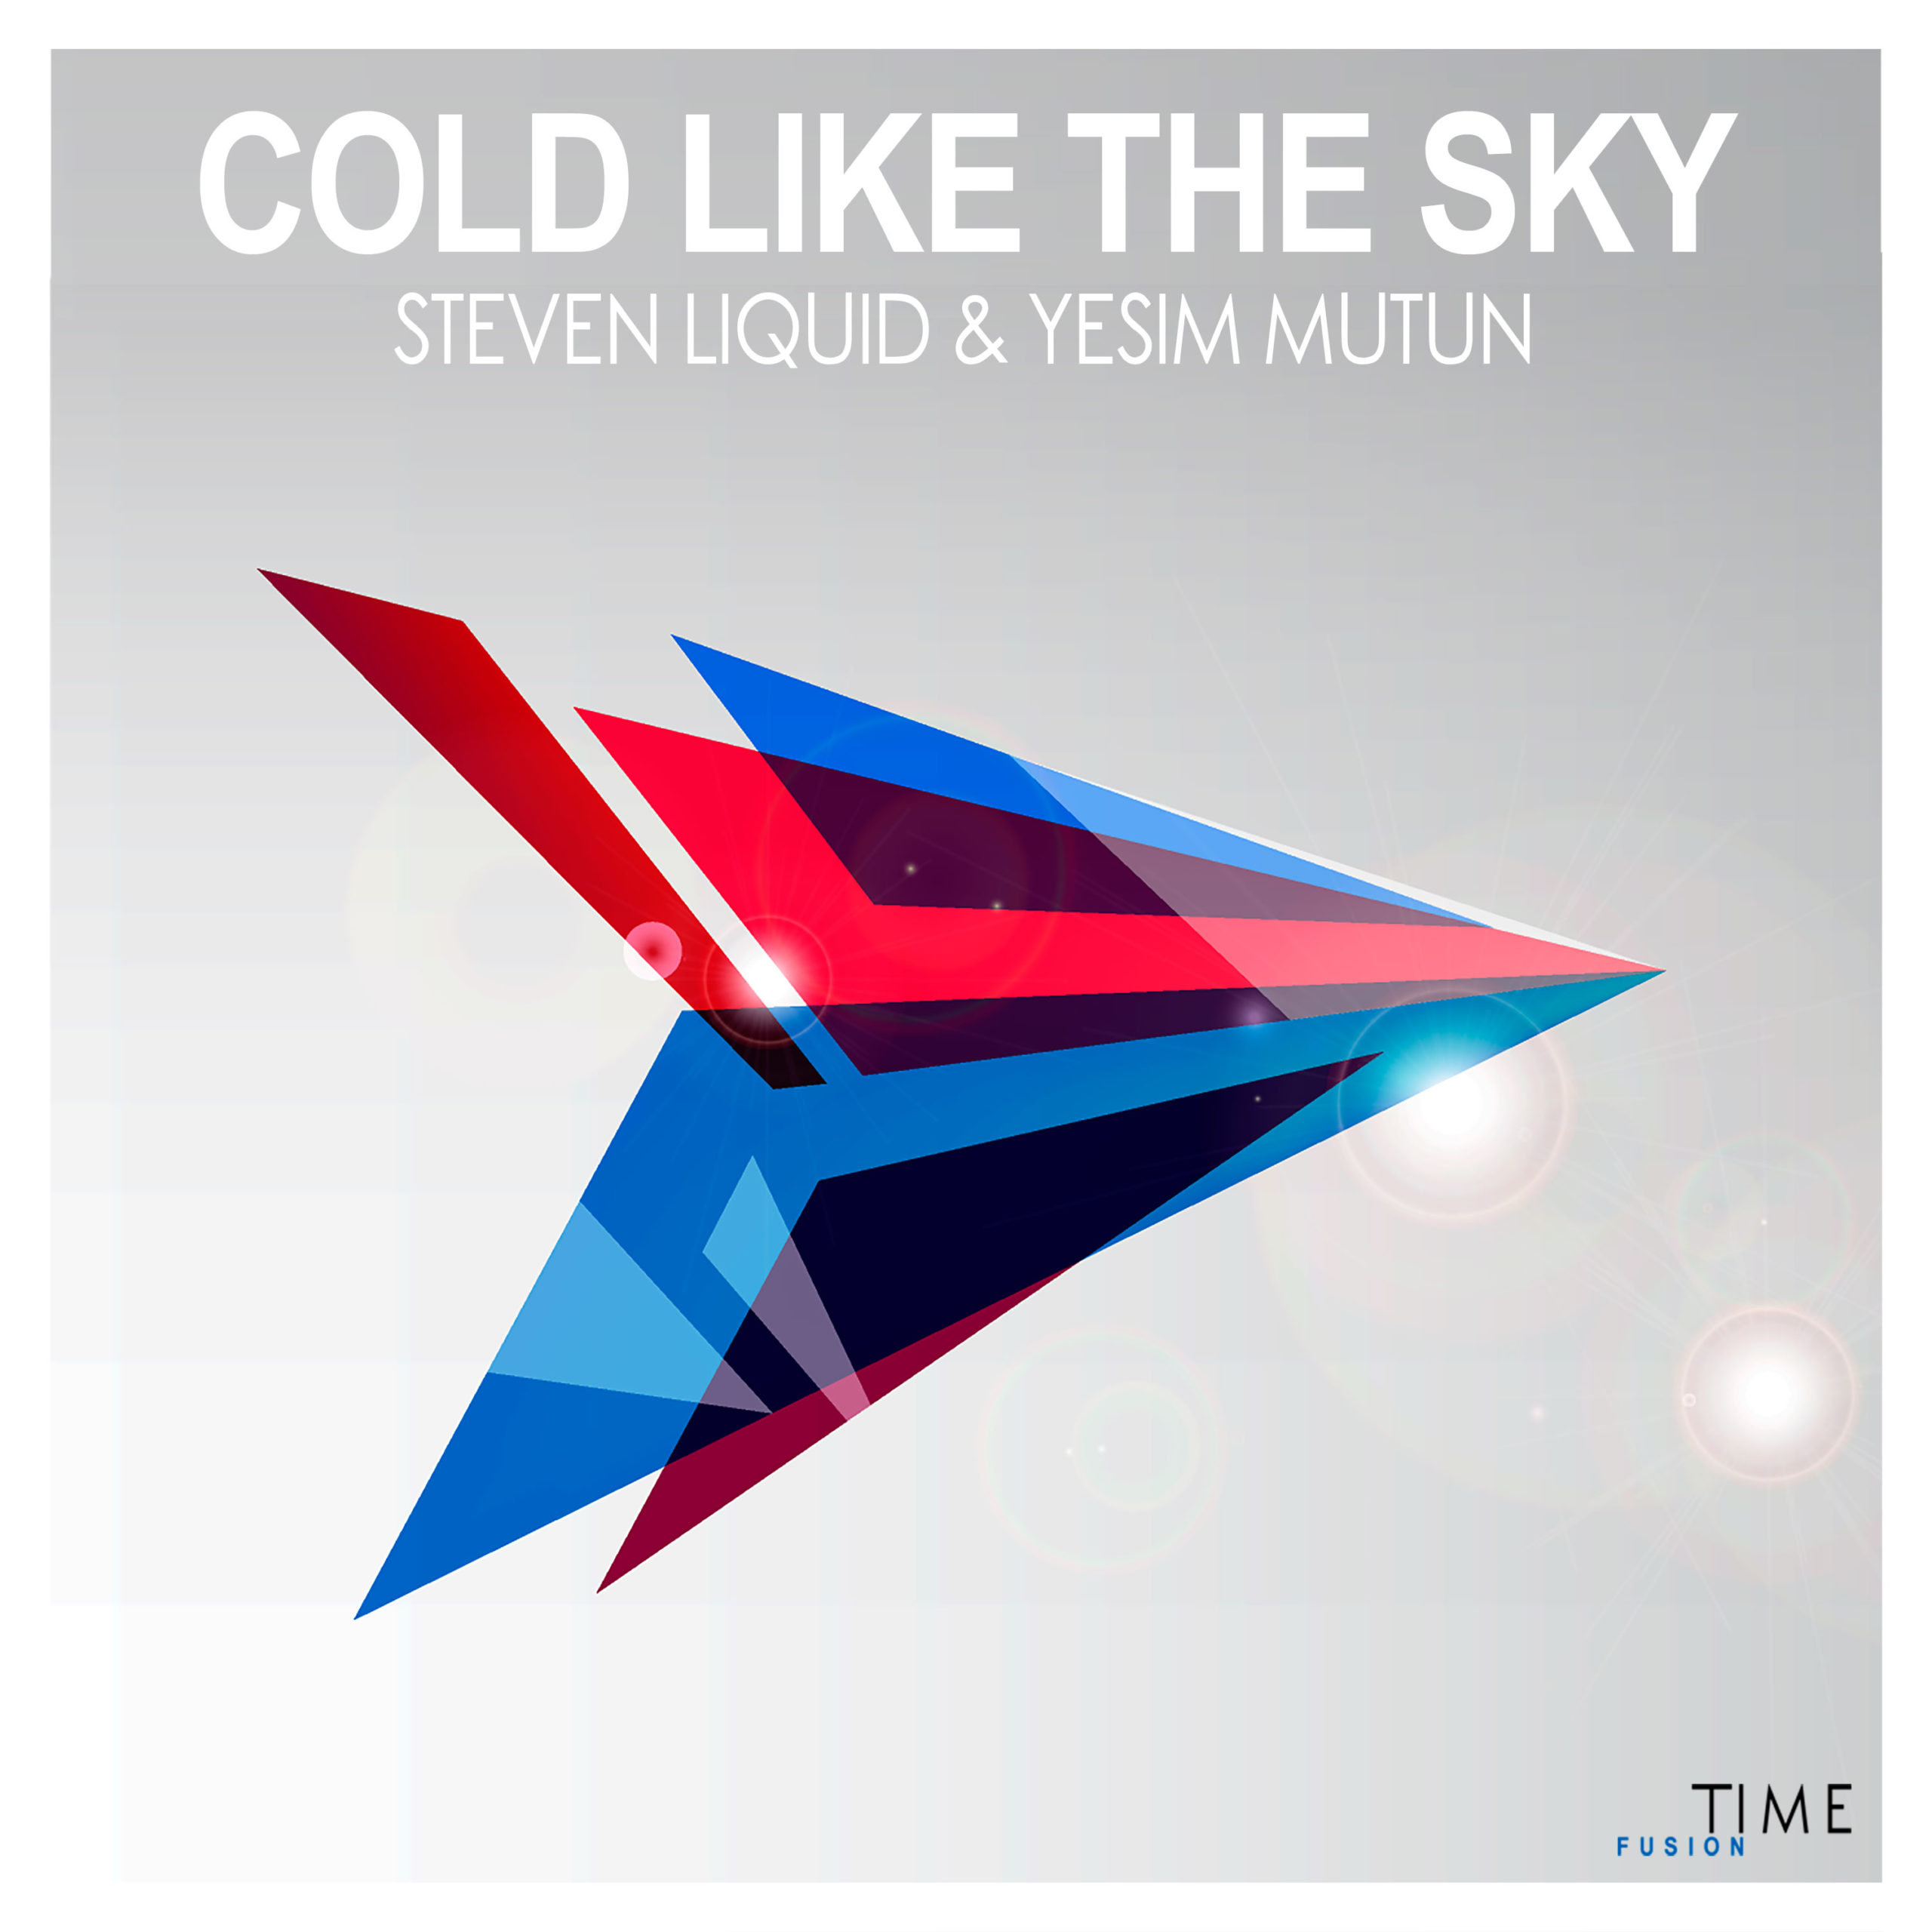 https://www.ultimate-house-records.com/wp-content/uploads/2021/01/tf140_Cold_like_the_Sky-Cover_3000px_web-scaled.jpg